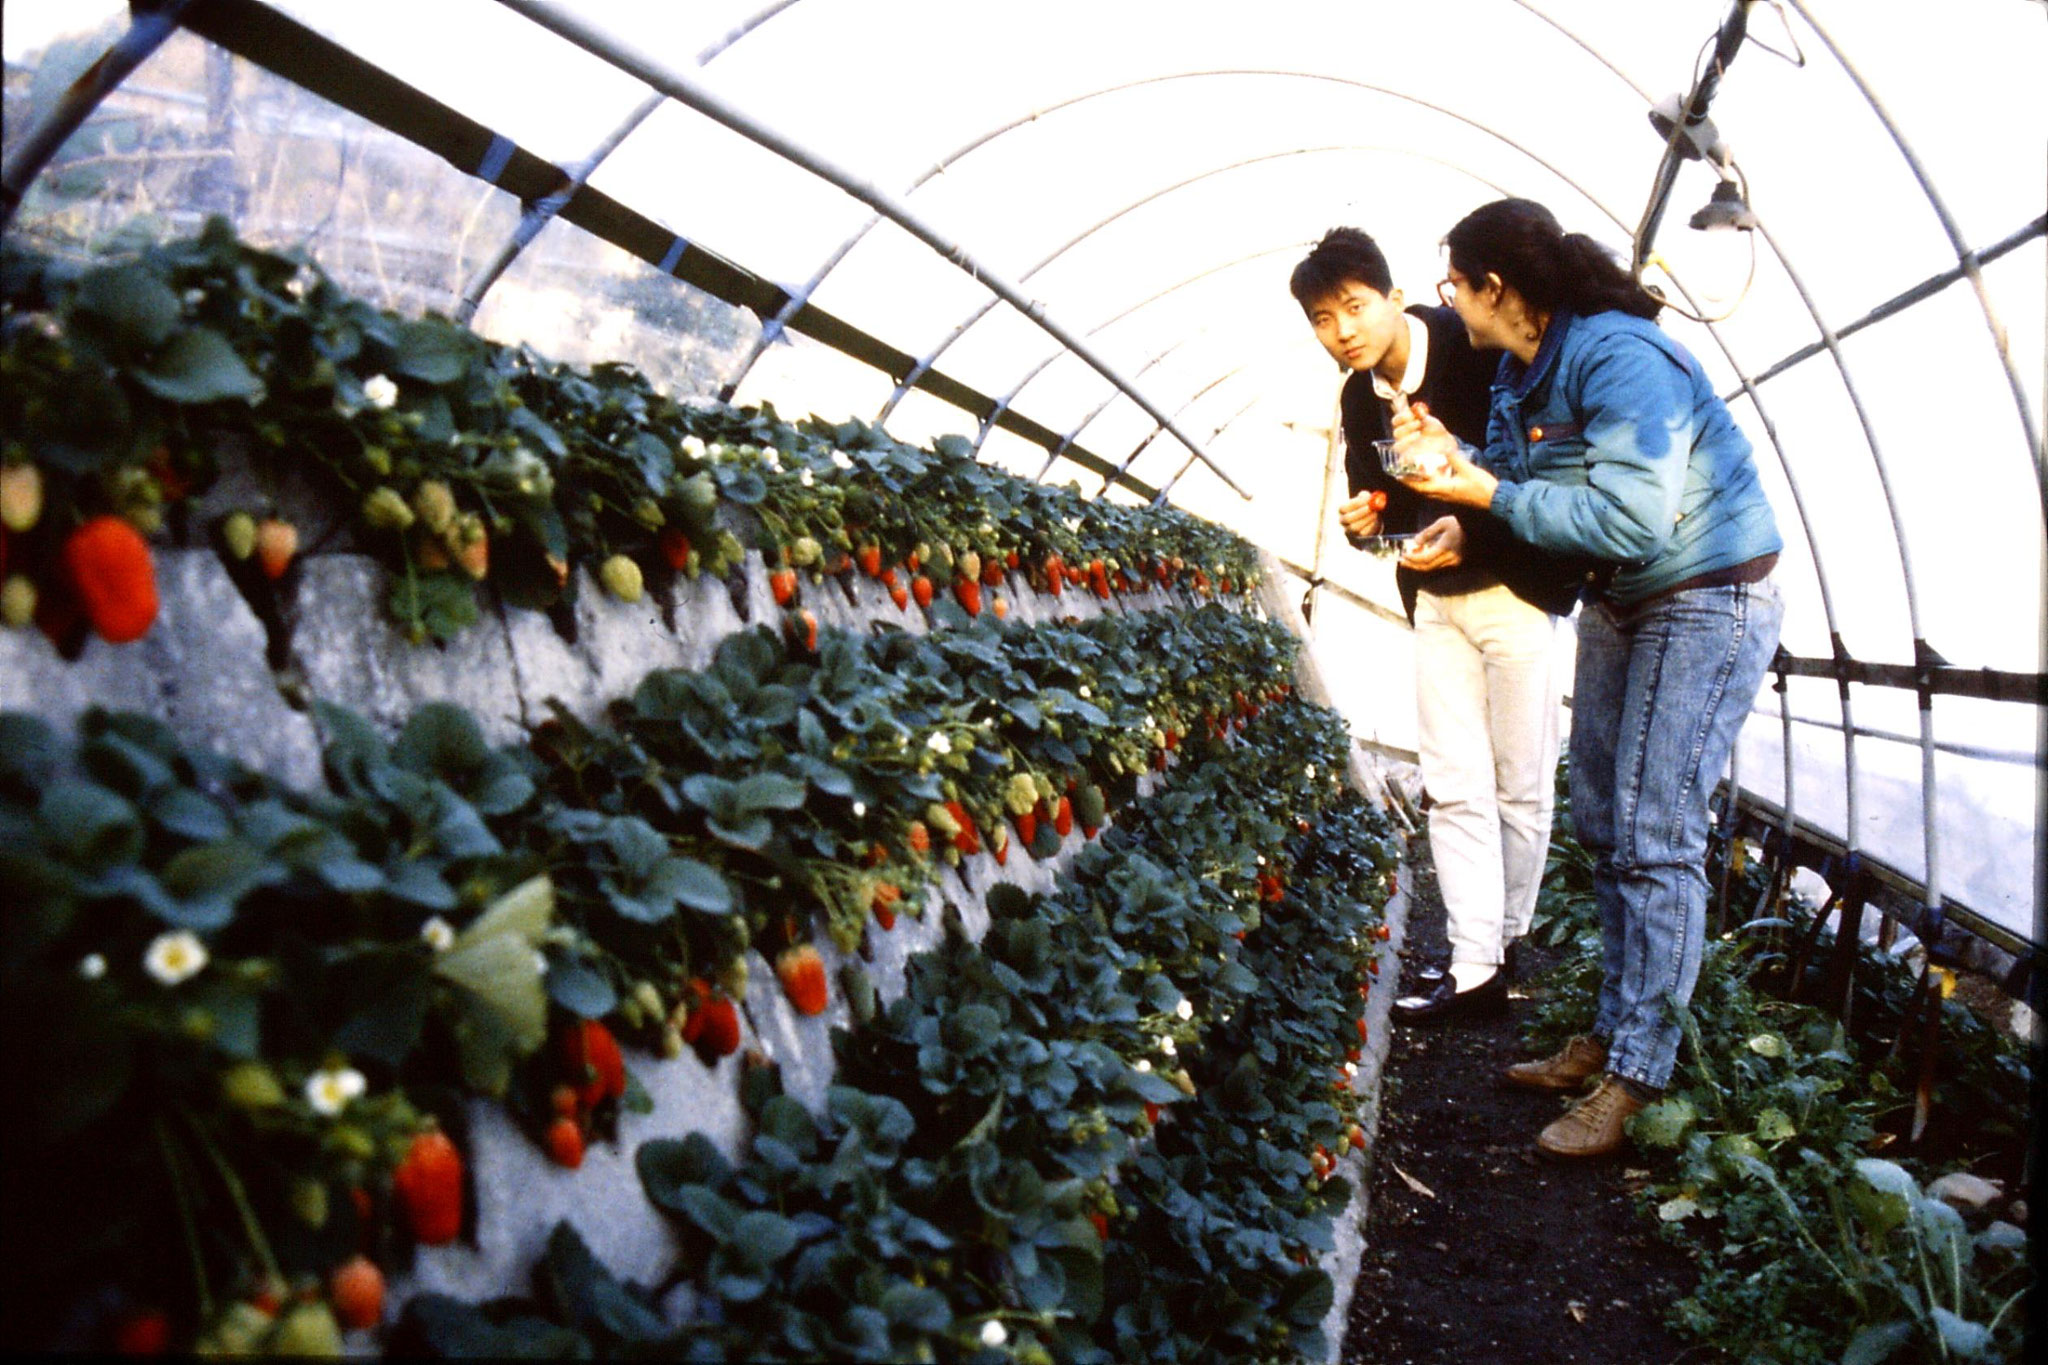 27/1/1989: 24: strawberry farm at Shimizu